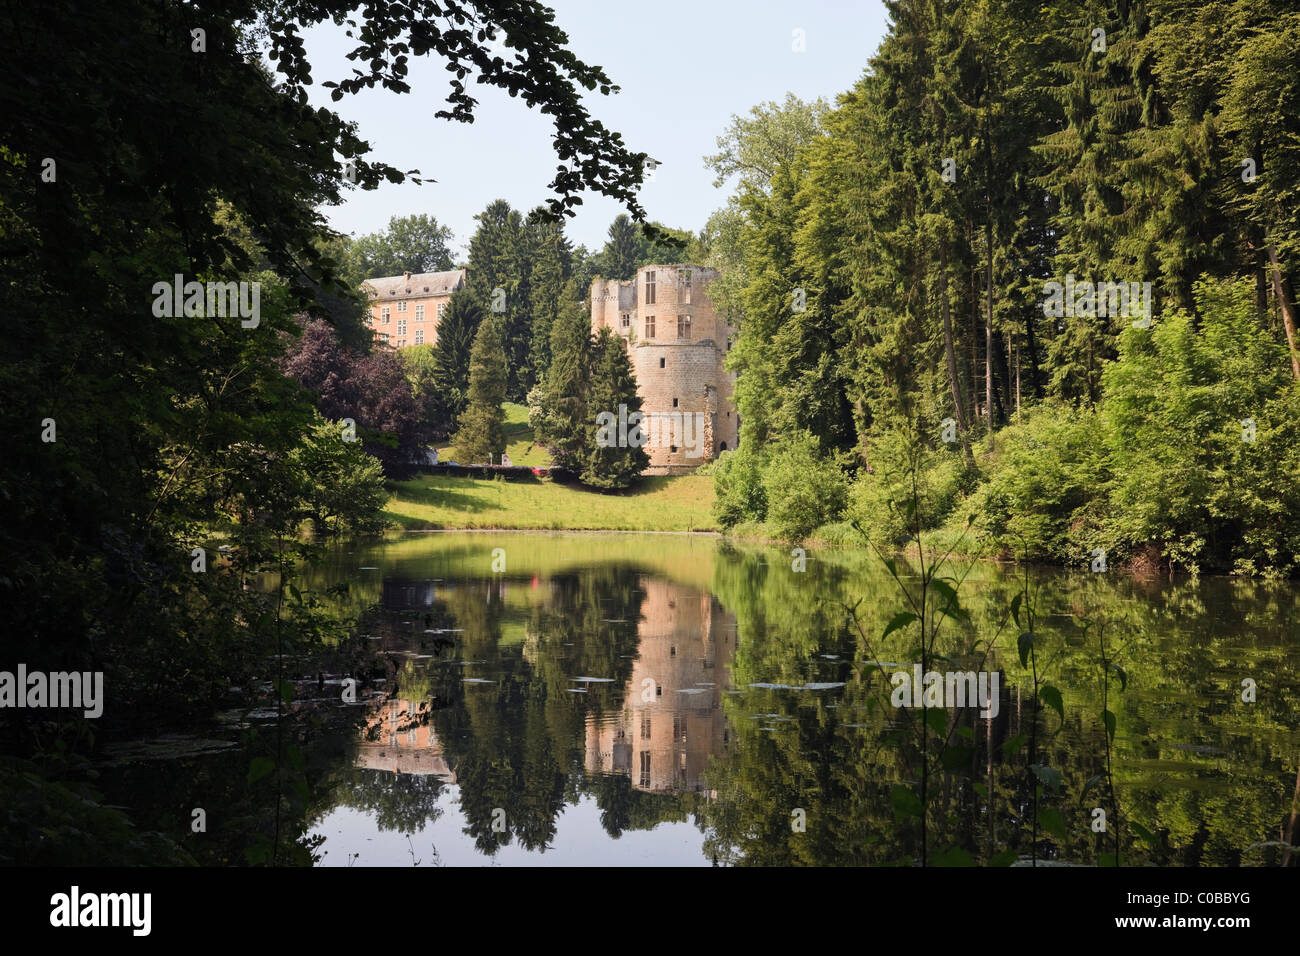 Beaufort, Grand Duchy of Luxembourg, Europe. 12th century Château de Beaufort castle ruins from across the - Stock Image